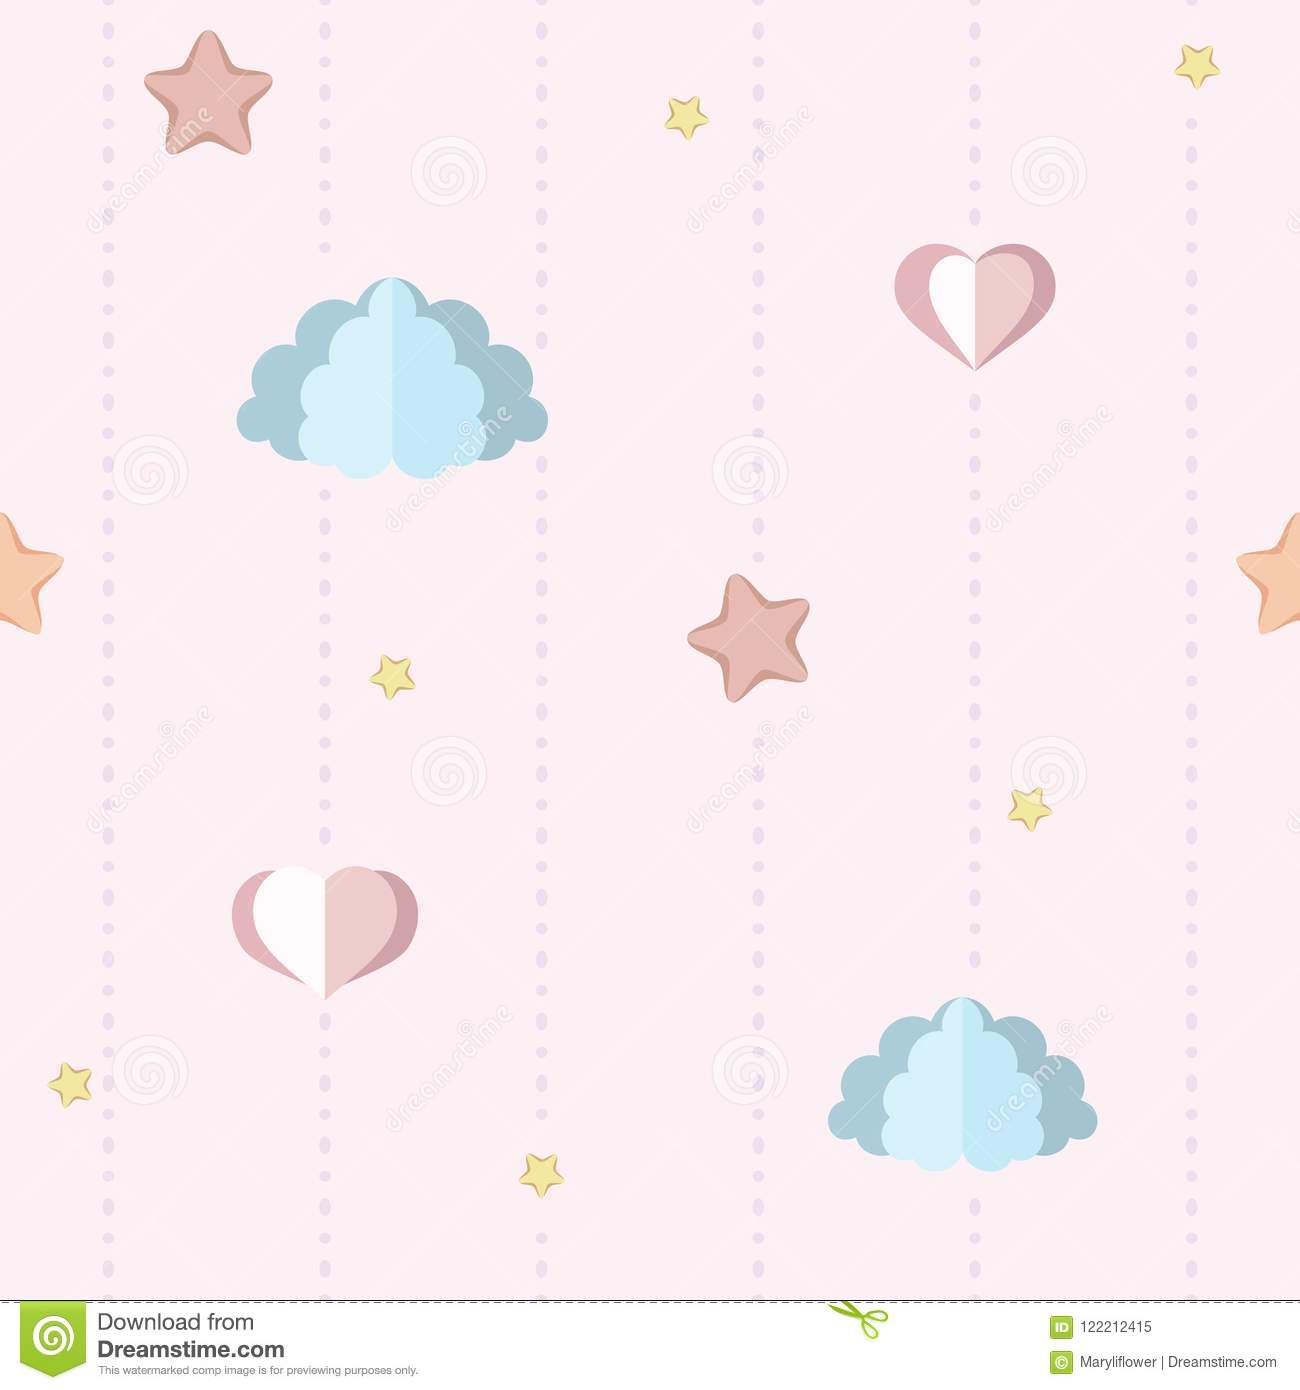 Cute Nursery Childrens Bedroom Wallpaper With Paper Clouds Stars And Hearts